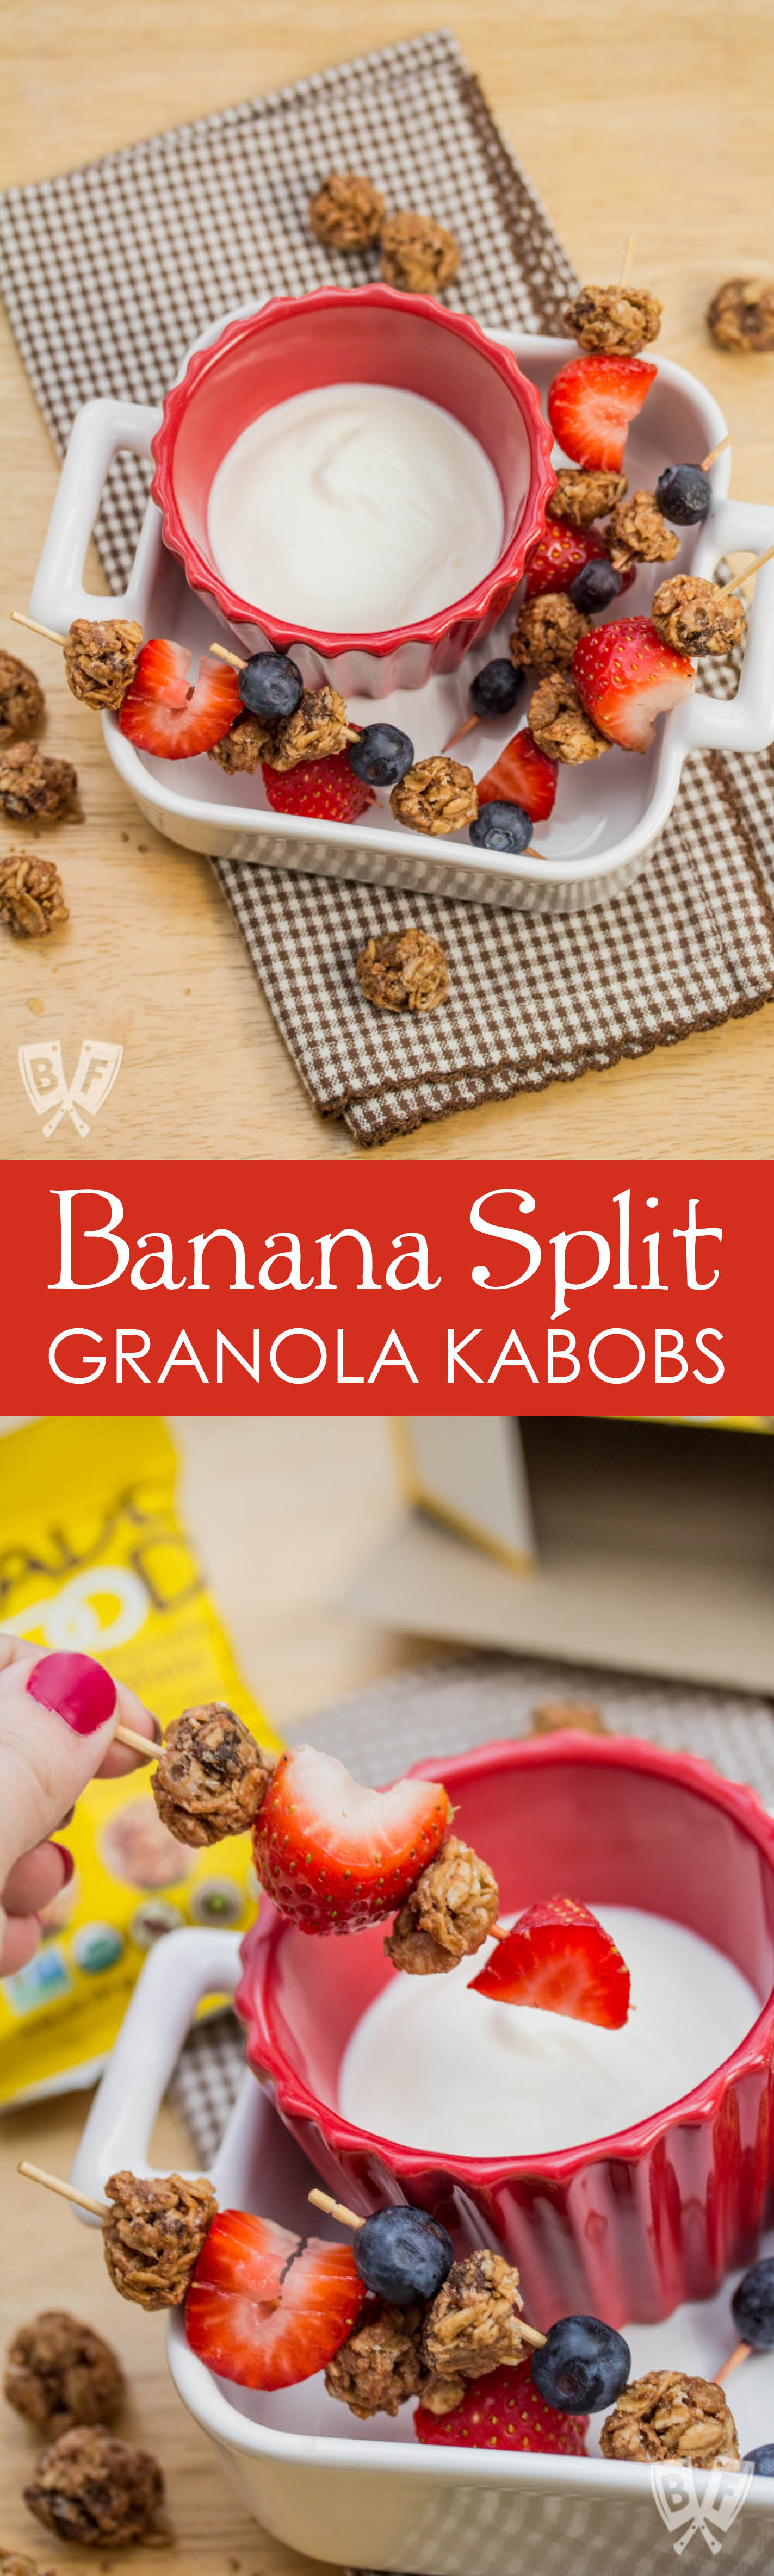 Banana Split Granola Kabobs: This 3 ingredient snack packs all the flavor of a dessert classic into a healthy, bite-sized skewer! A fun, allergy-friendly lunchbox treat. #ad